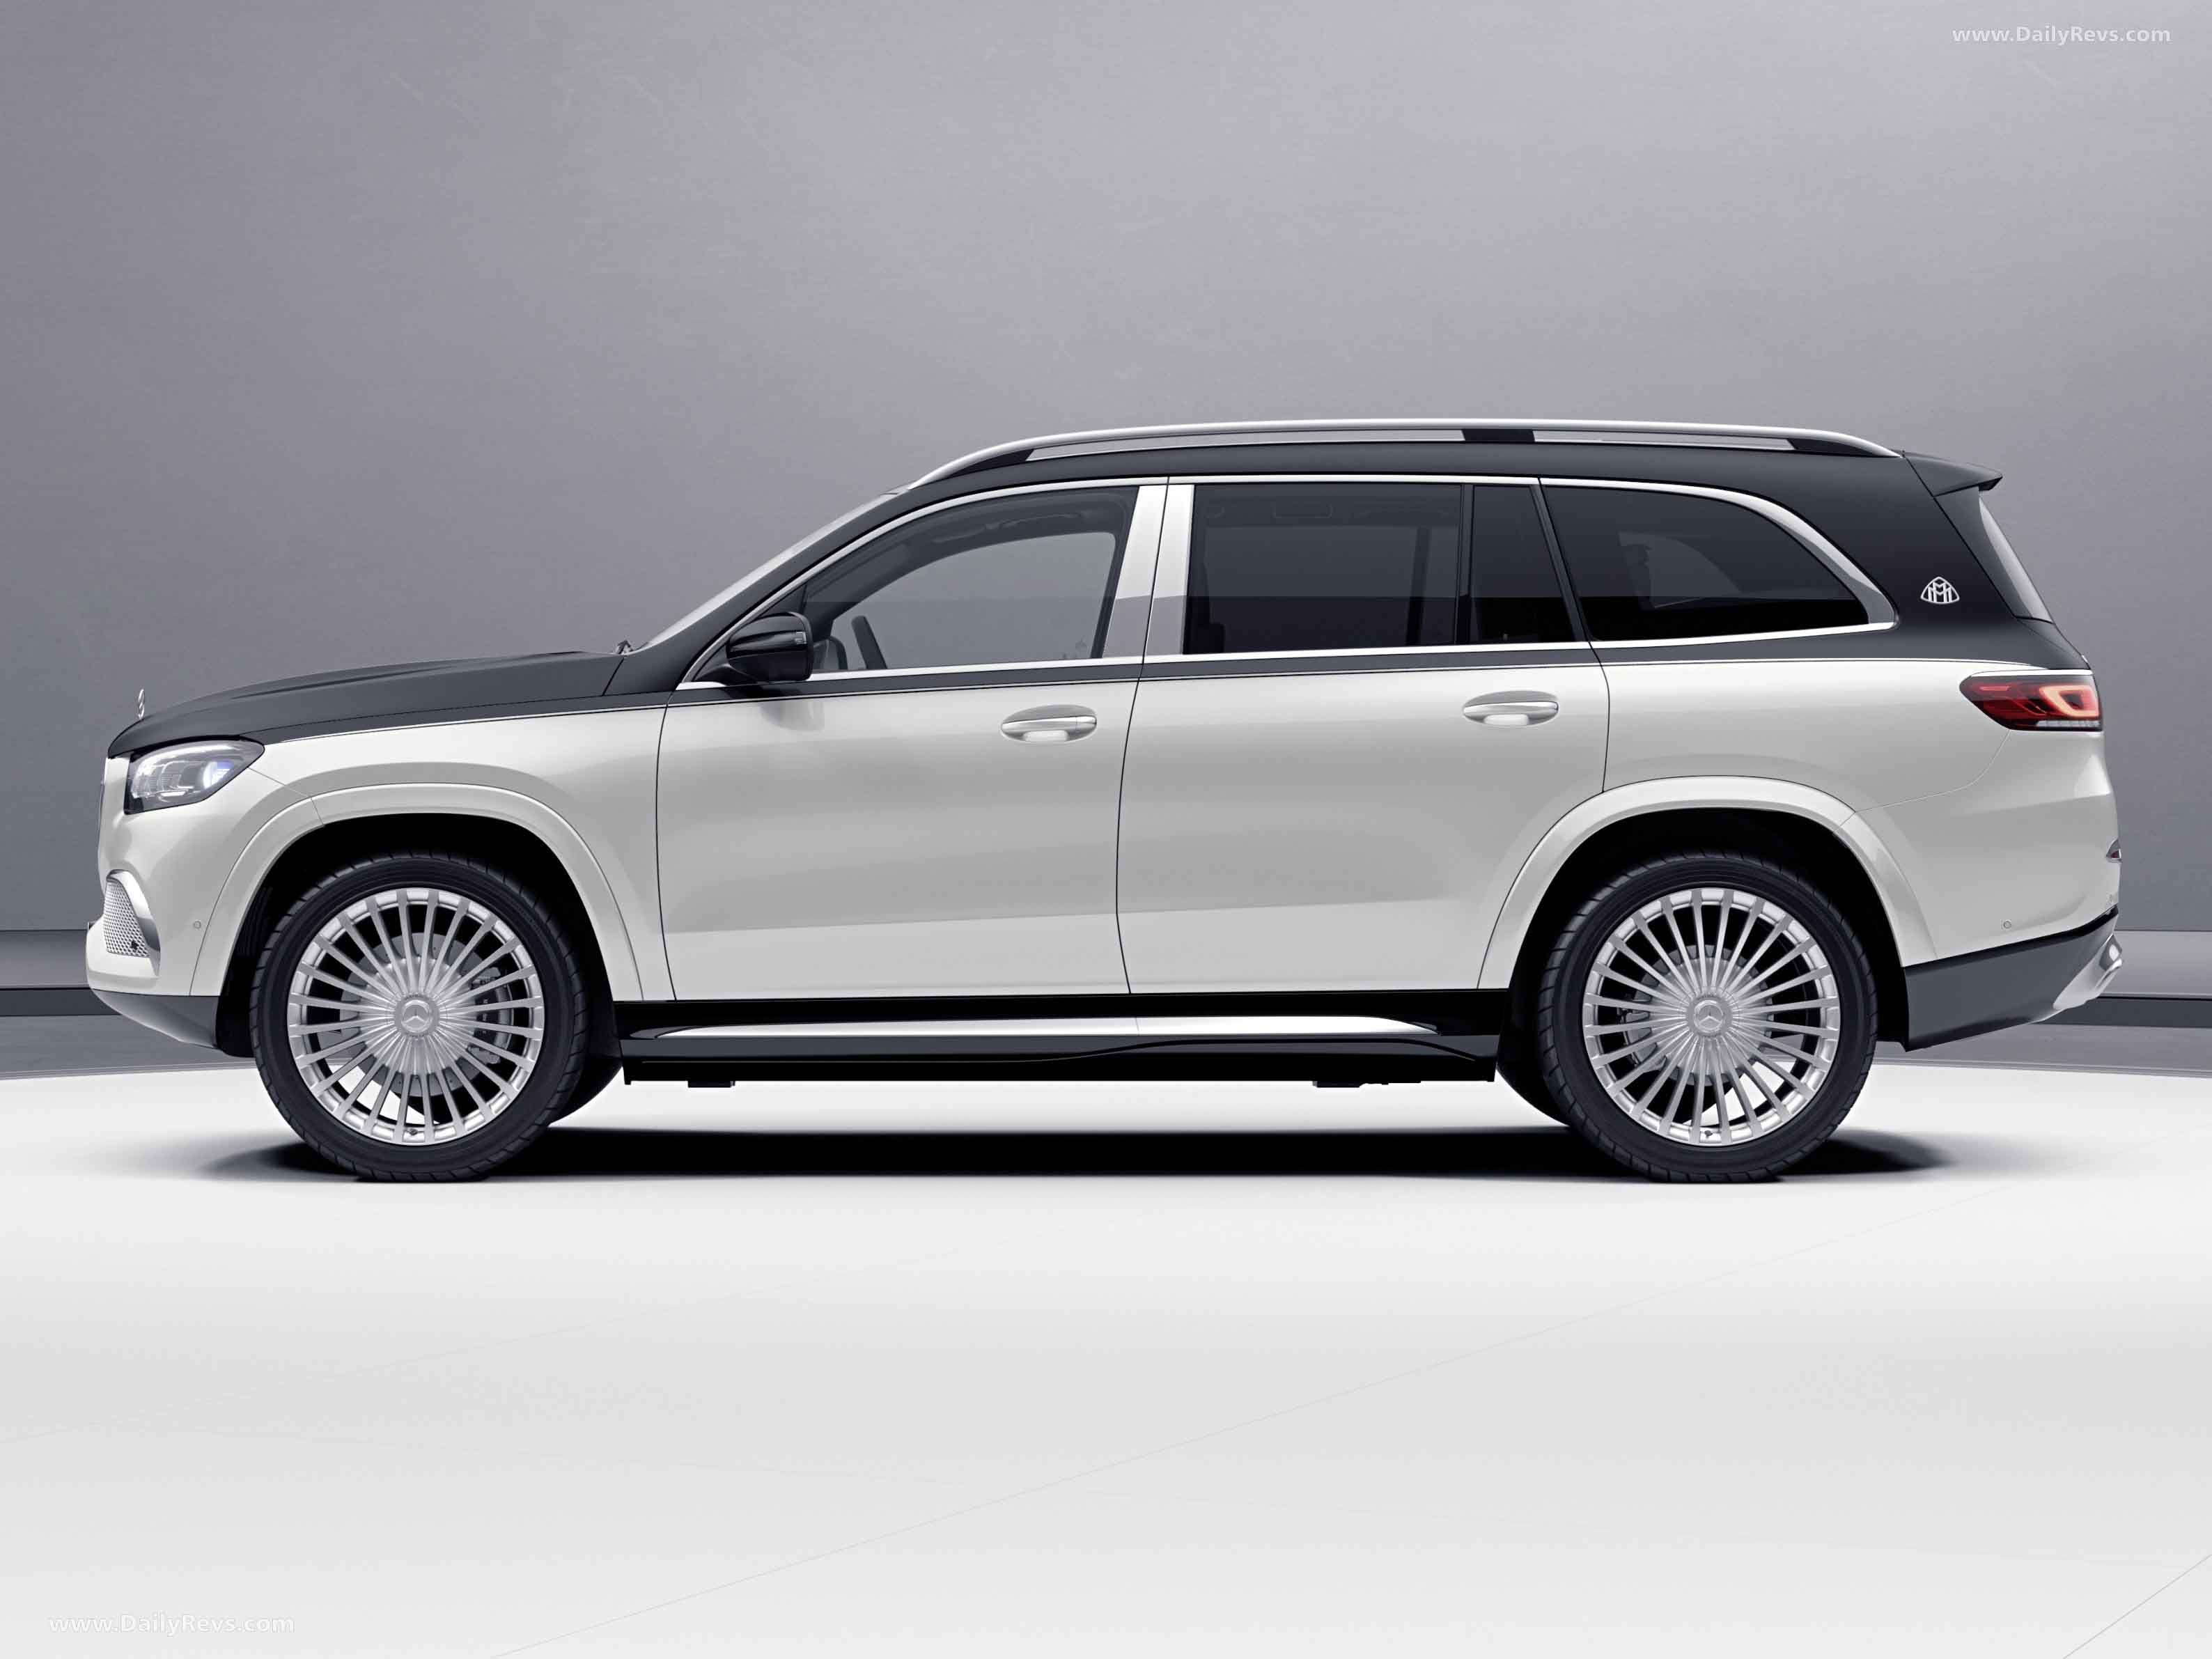 2021 Mercedes Benz Gls 600 Maybach Hd Pictures Videos Specs Information Dailyrevs